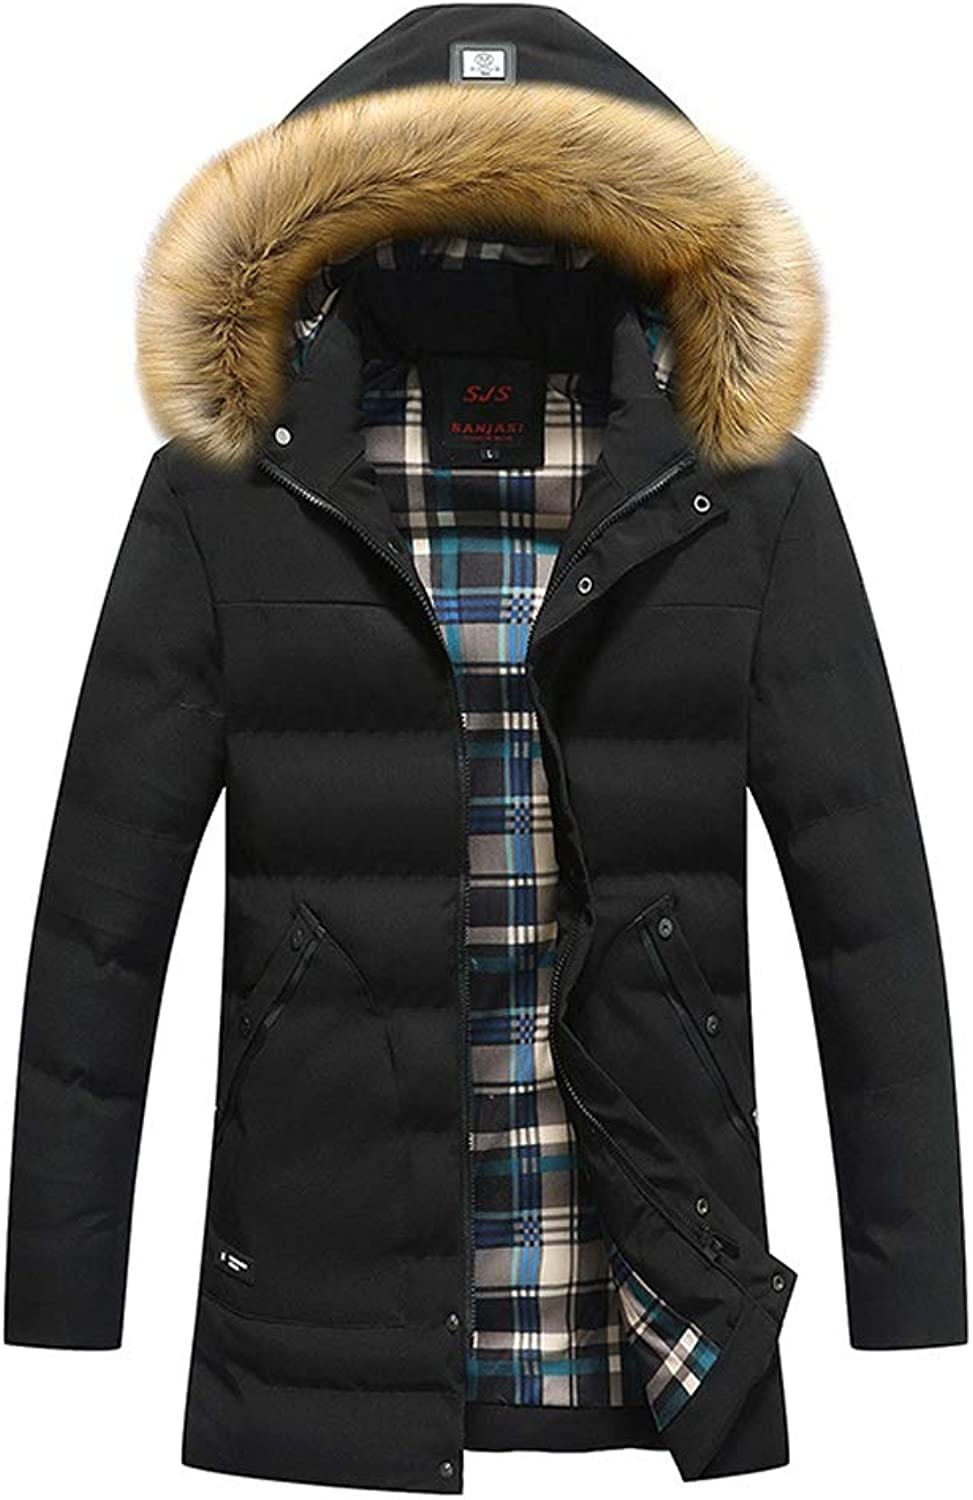 New Down Jacket, Men's Long Hooded Jacket, Winter Outdoor Lightweight Warm Clothing, Suitable for Cold Weather